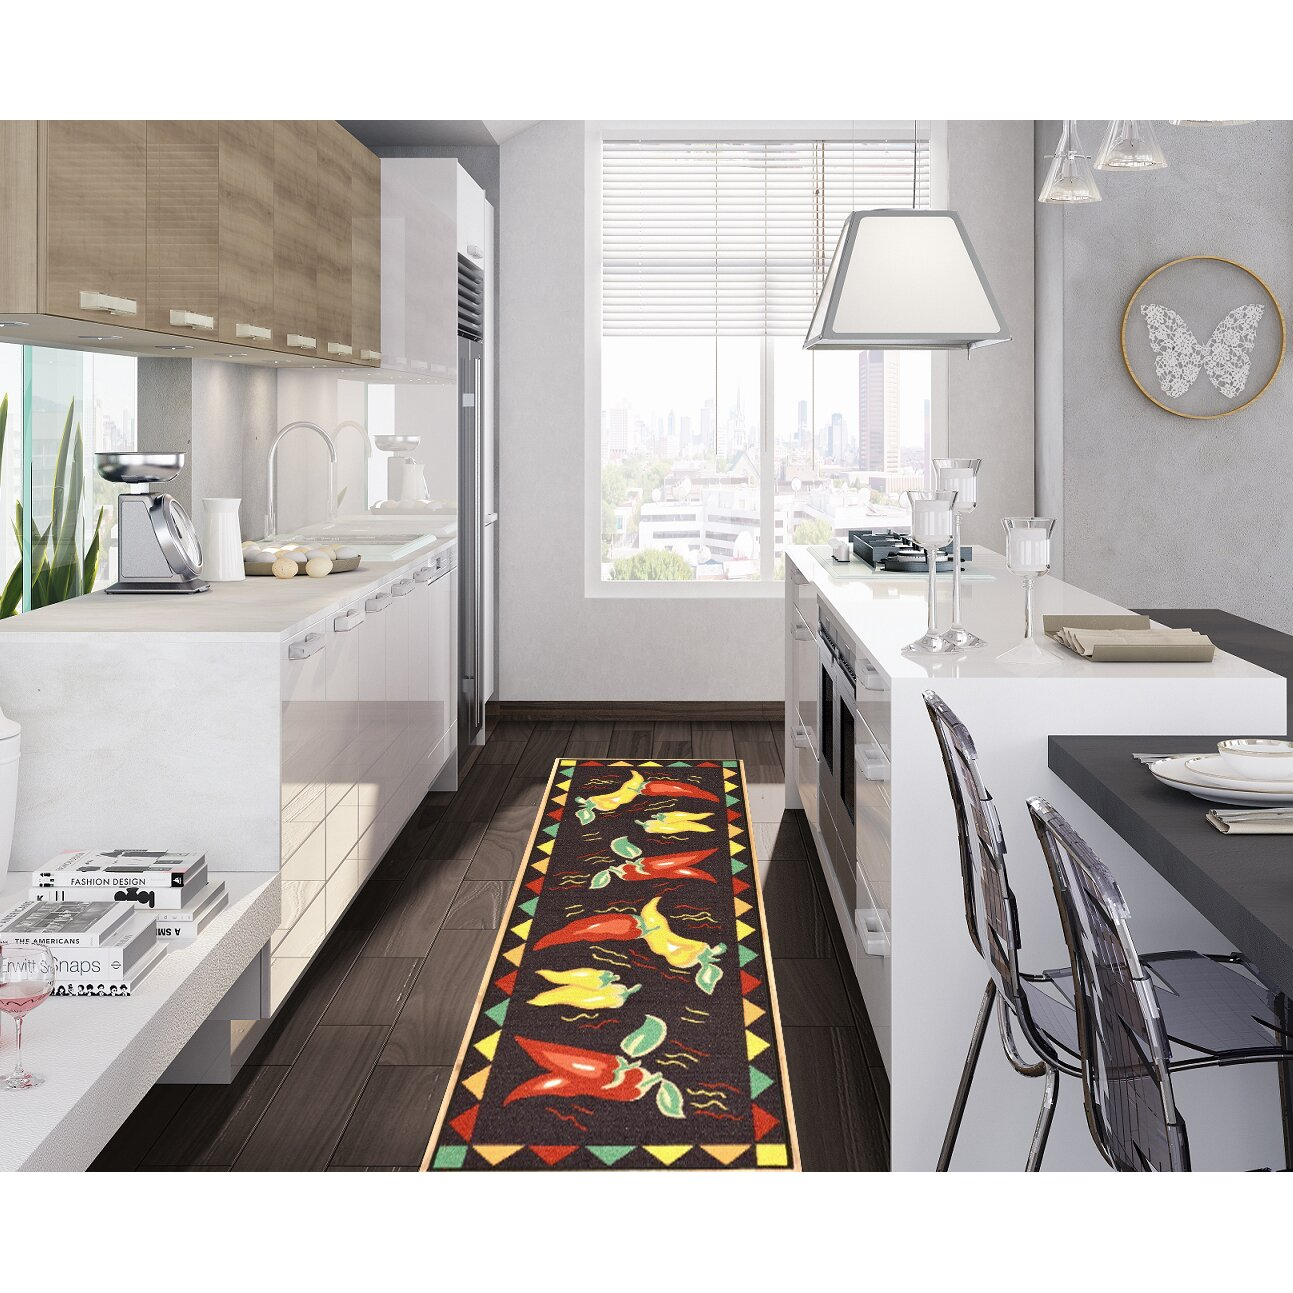 Washable Rugs For Kitchen Area: Ottomanson Siesta Black Area Rug & Reviews